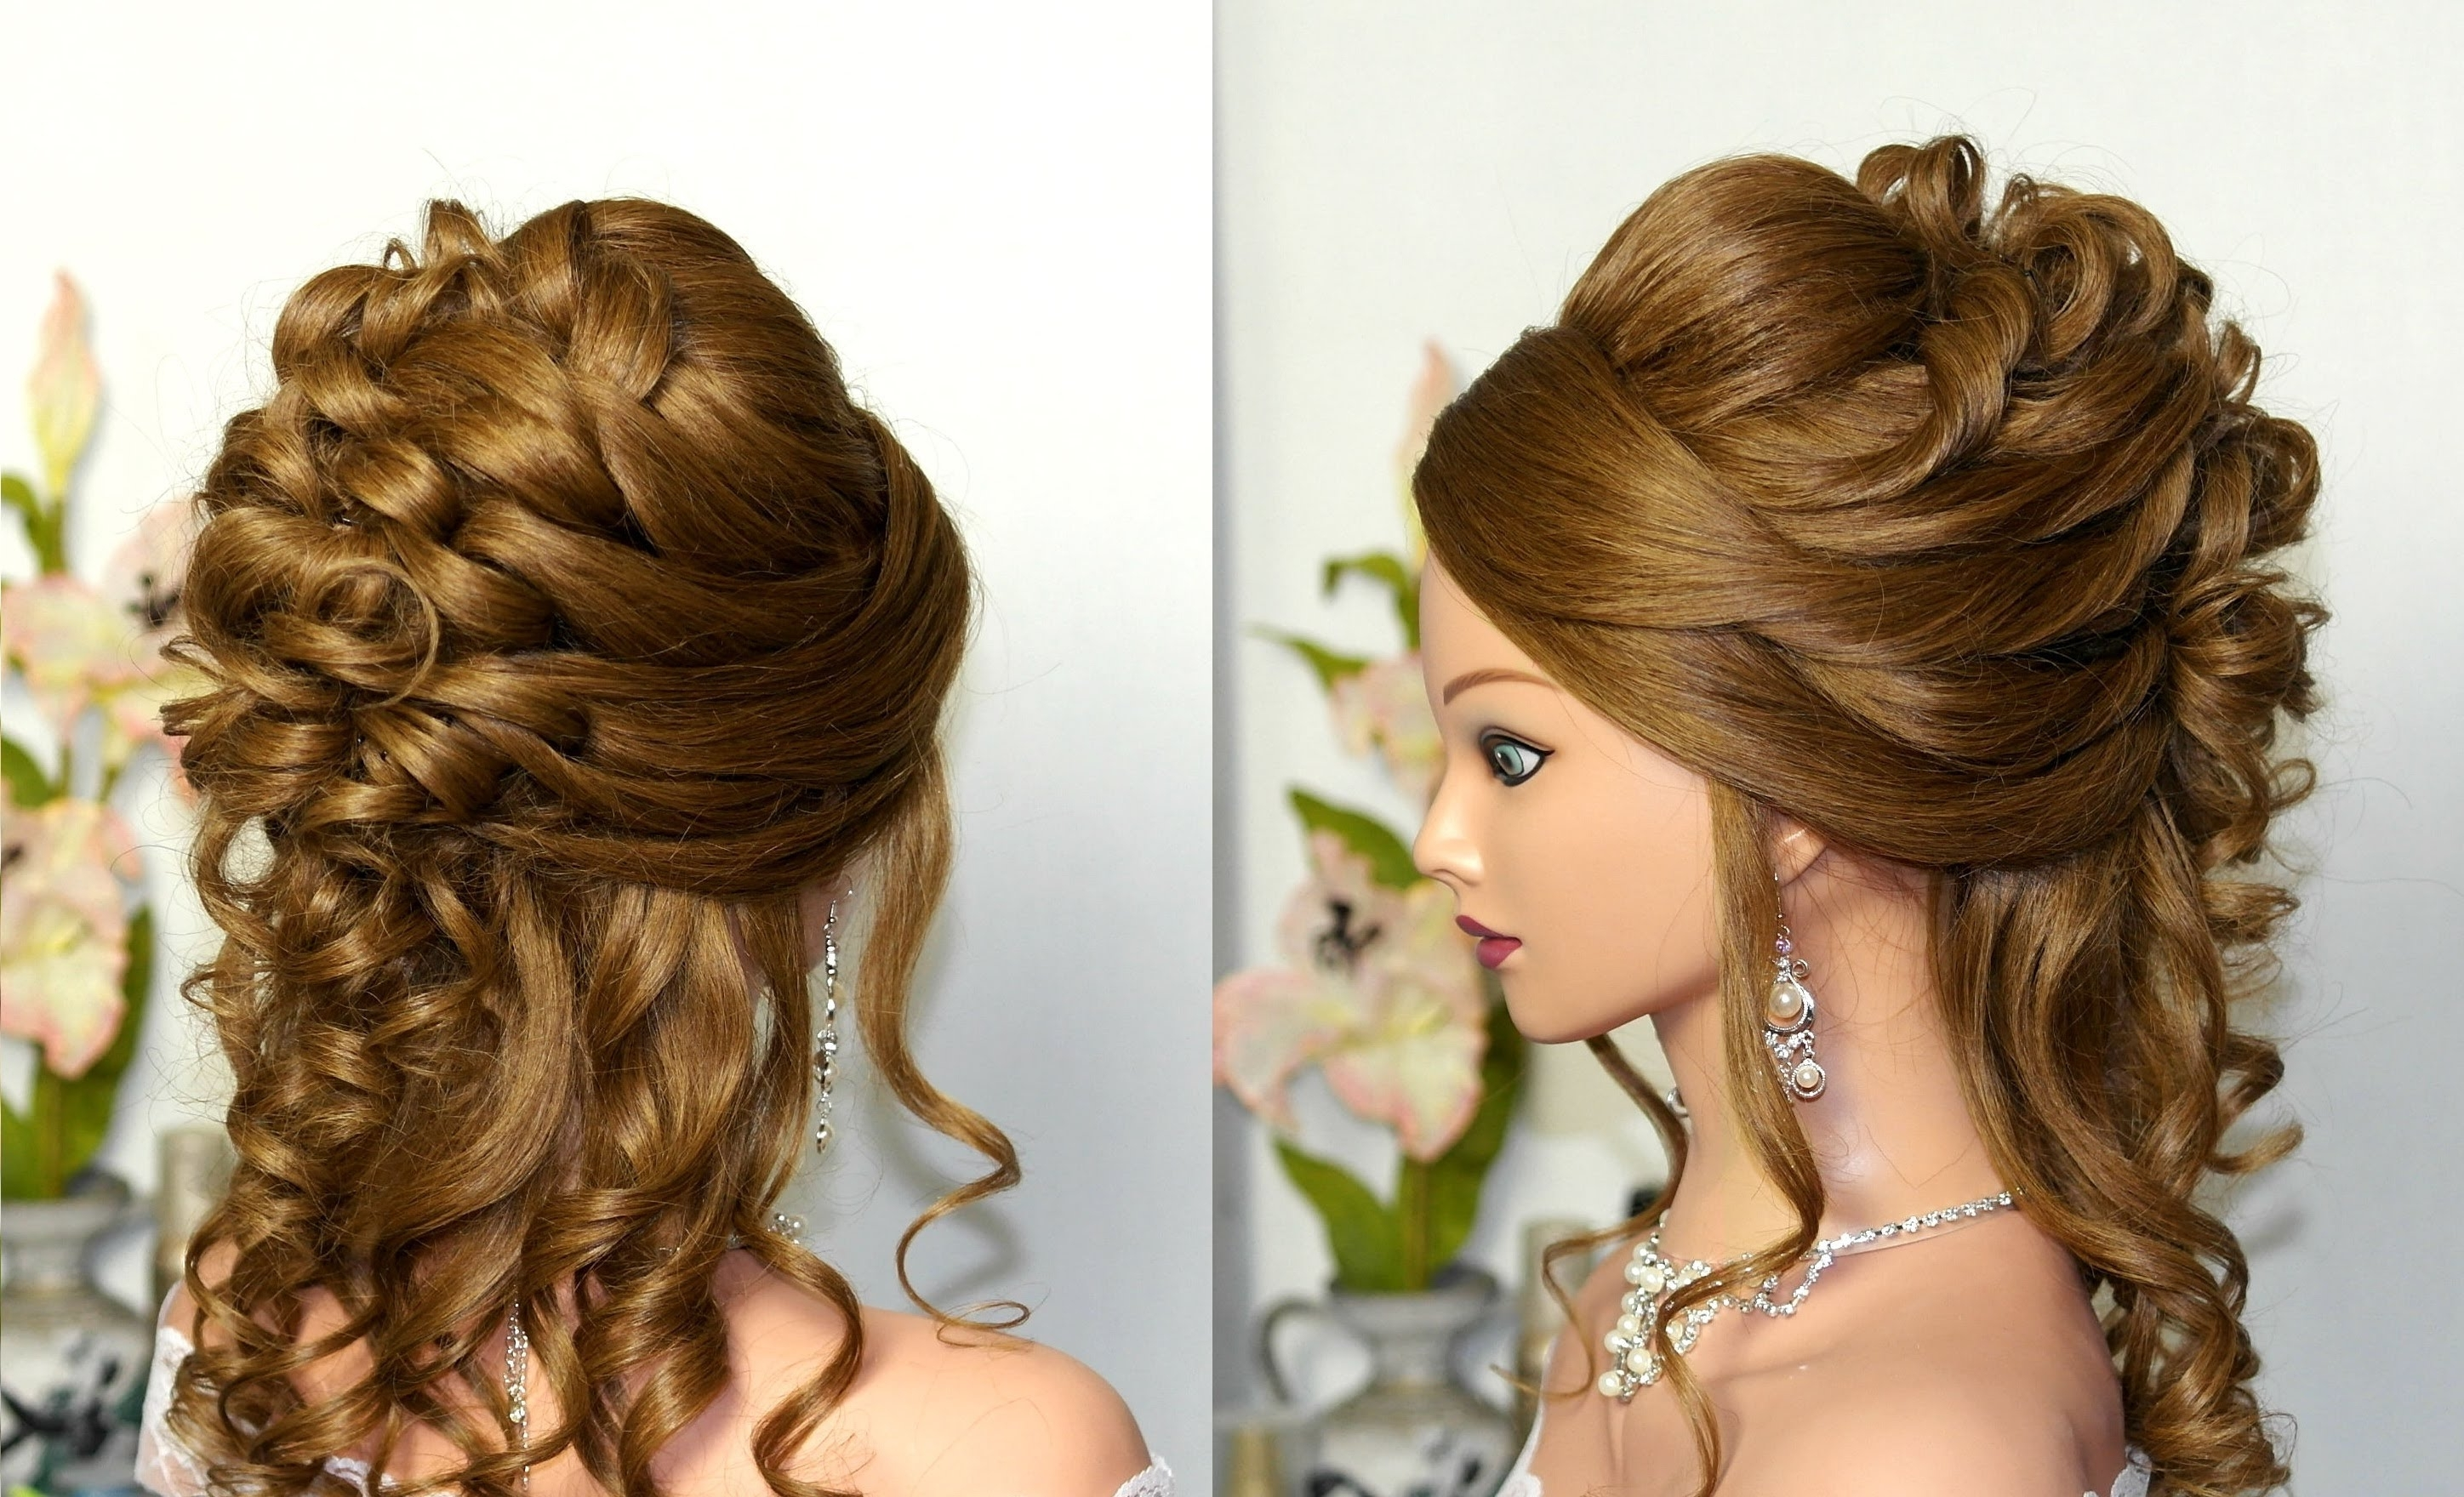 Curly Wedding Prom Hairstyle For Long Hair (View 2 of 15)